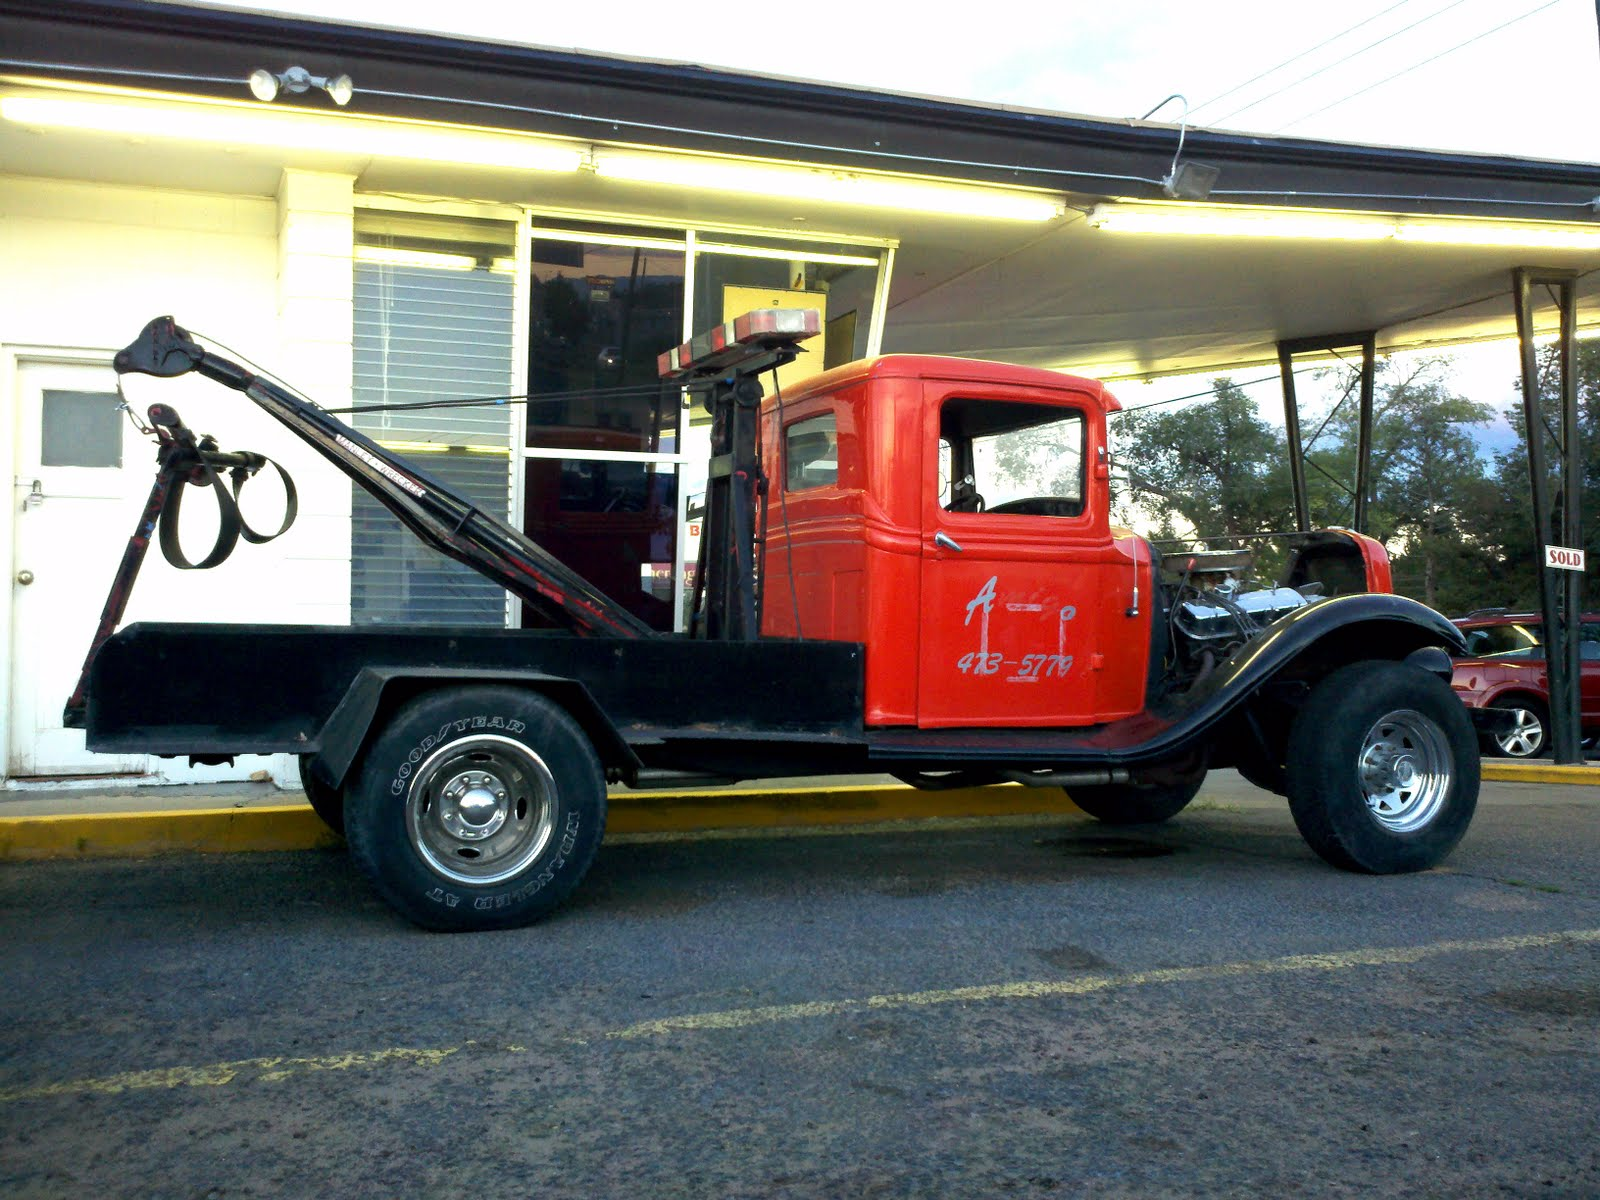 Ford Pickup: Old Ford Pickup Trucks For Sale In South Africa